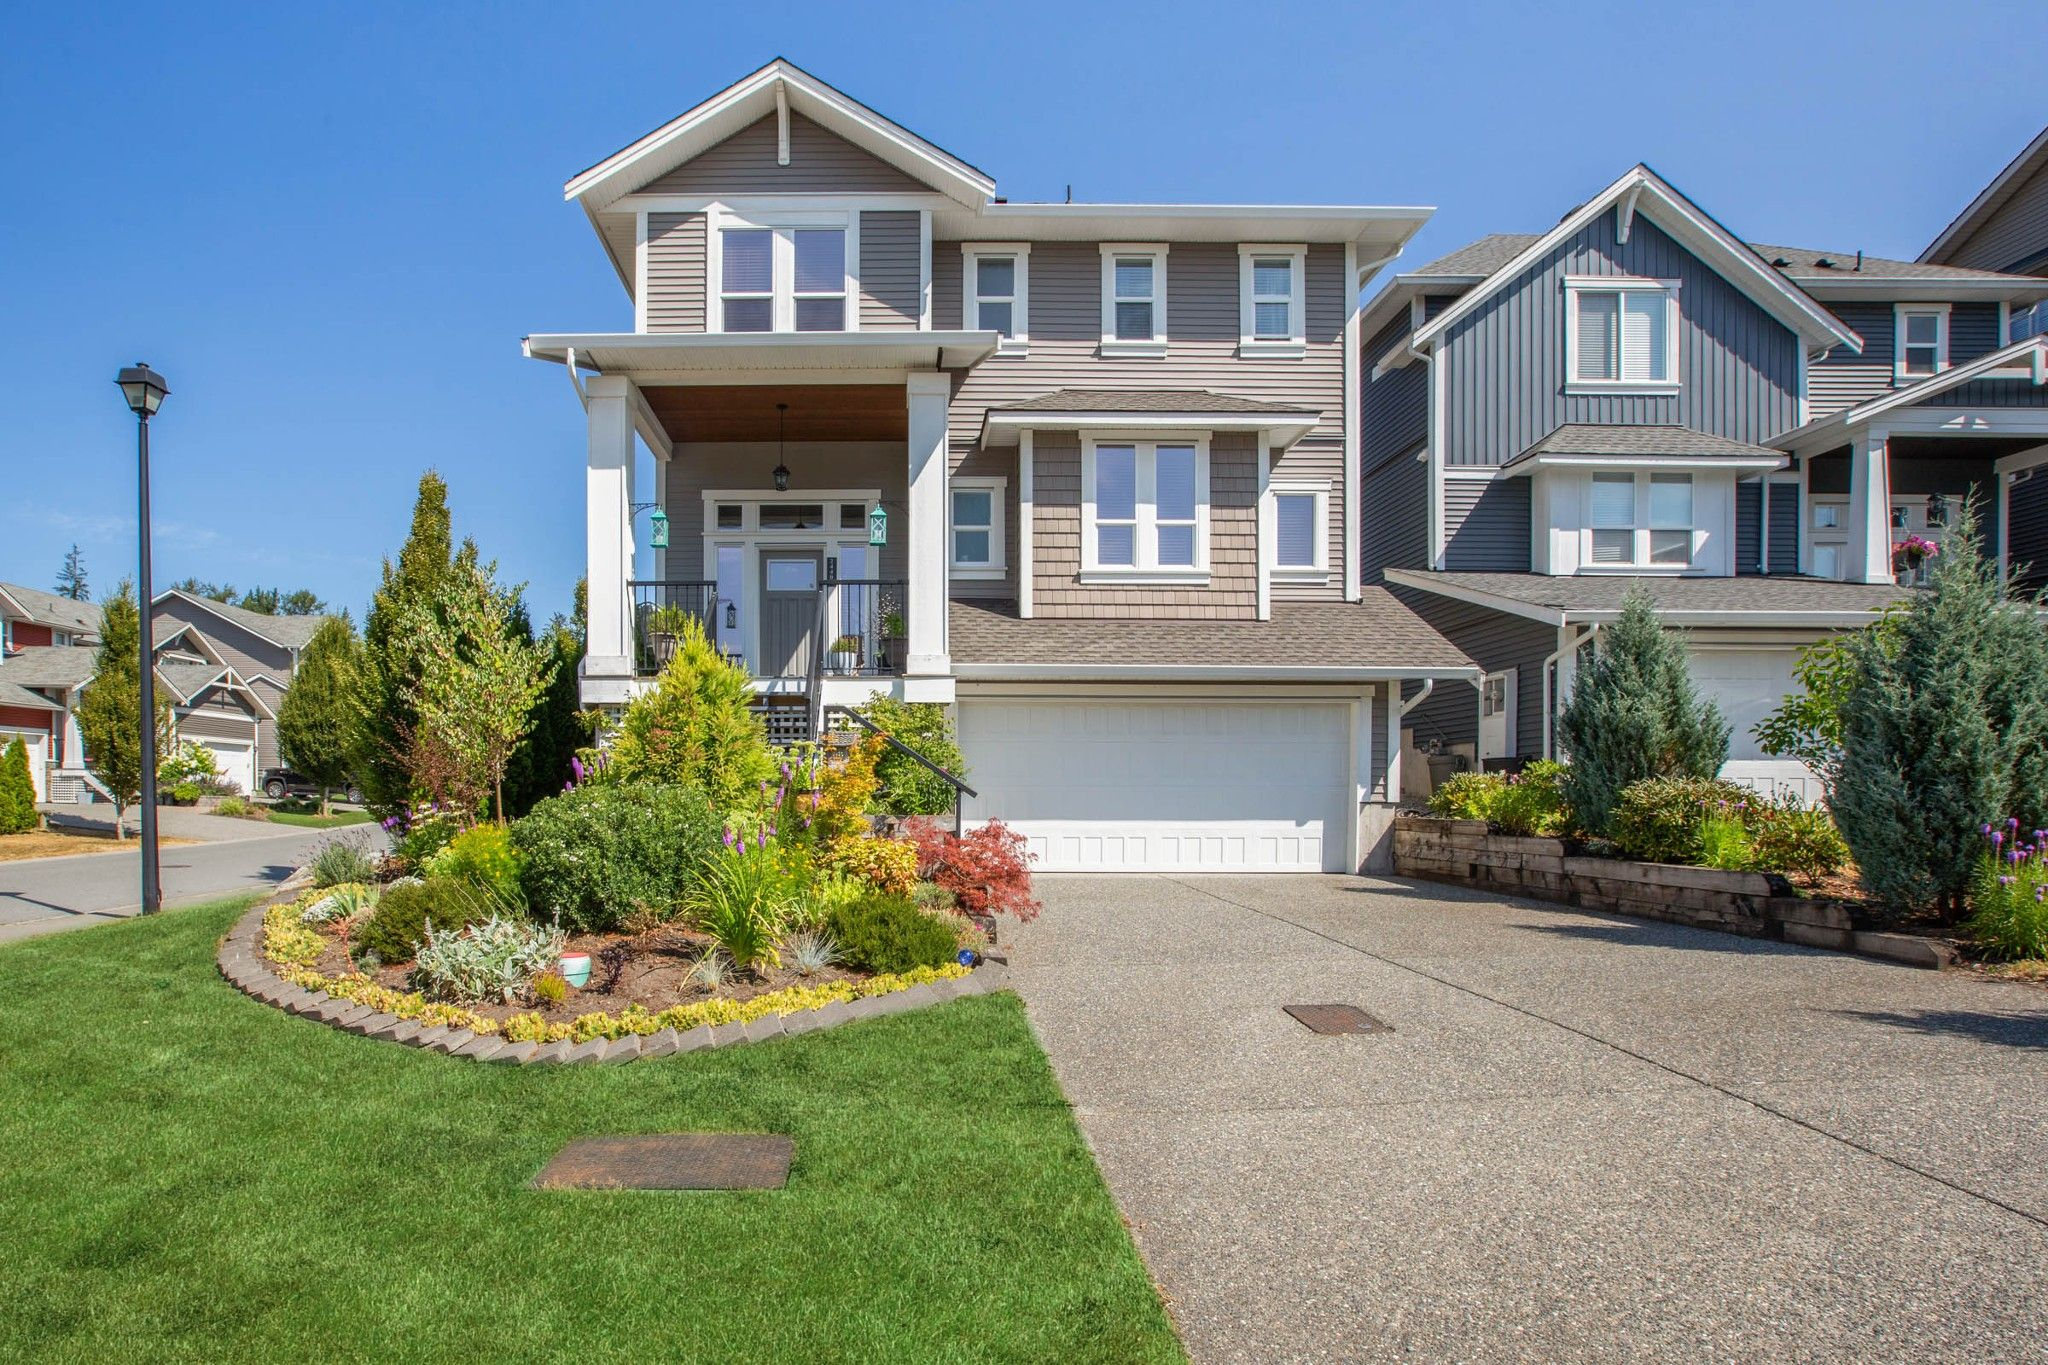 """Main Photo: 24403 112A Avenue in Maple Ridge: Cottonwood MR House for sale in """"MONTGOMERY ACRES"""" : MLS®# R2607811"""